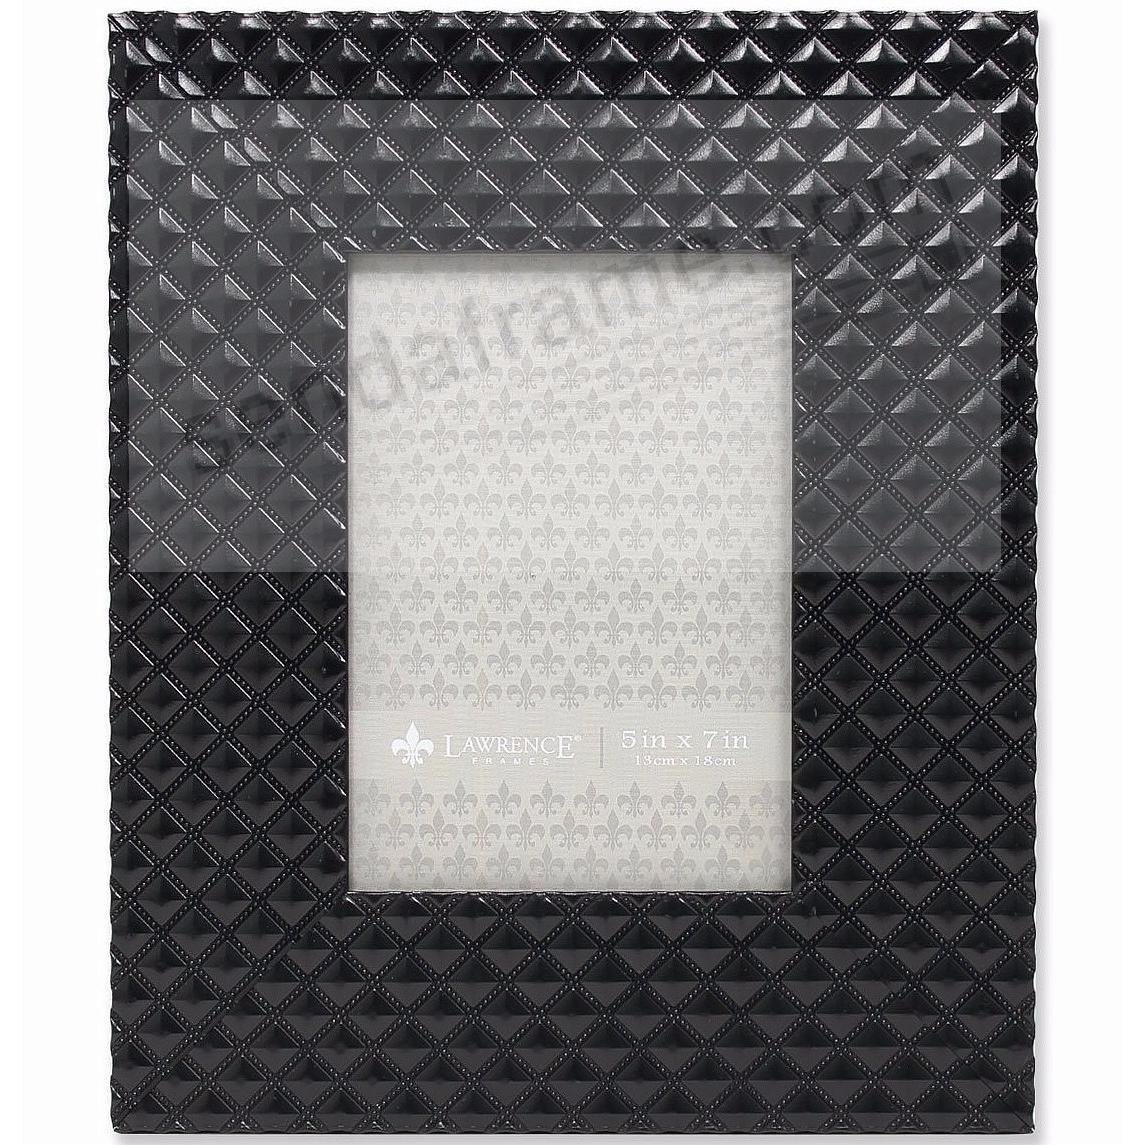 Diamond pattern 5x7 frame by lawrence picture frames photo diamond pattern 5x7 frame by lawrence jeuxipadfo Image collections